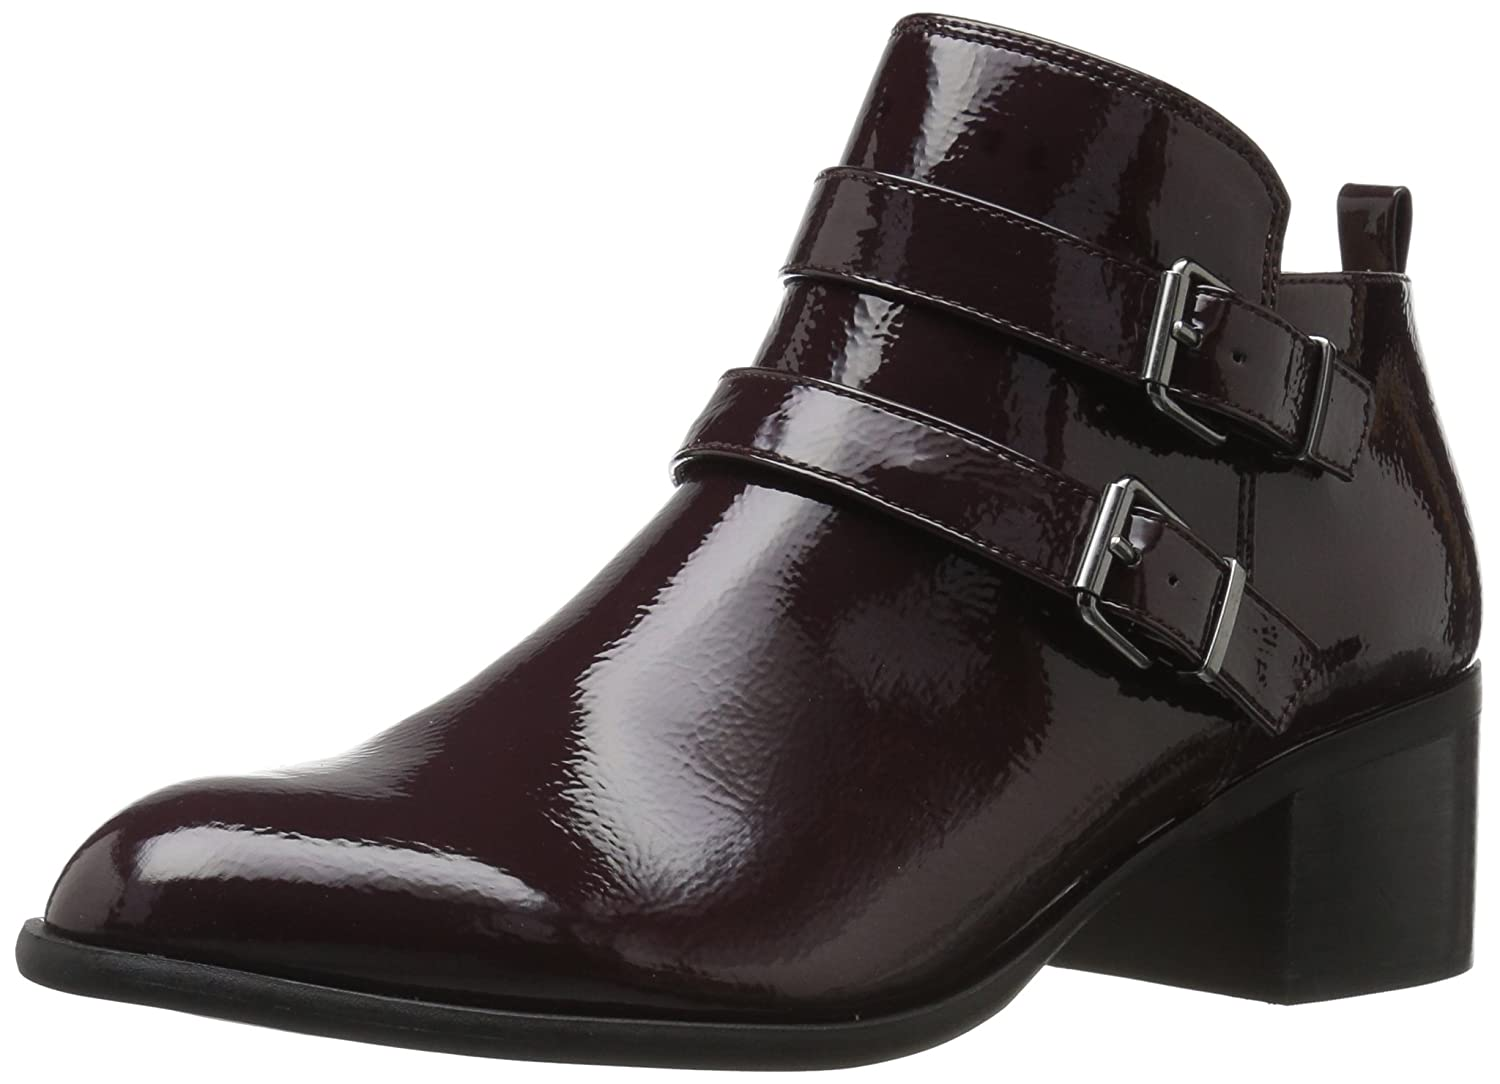 Franco Sarto Women's Raina Ankle Boot B071VCN9MY 5 B(M) US|Dark Burgundy